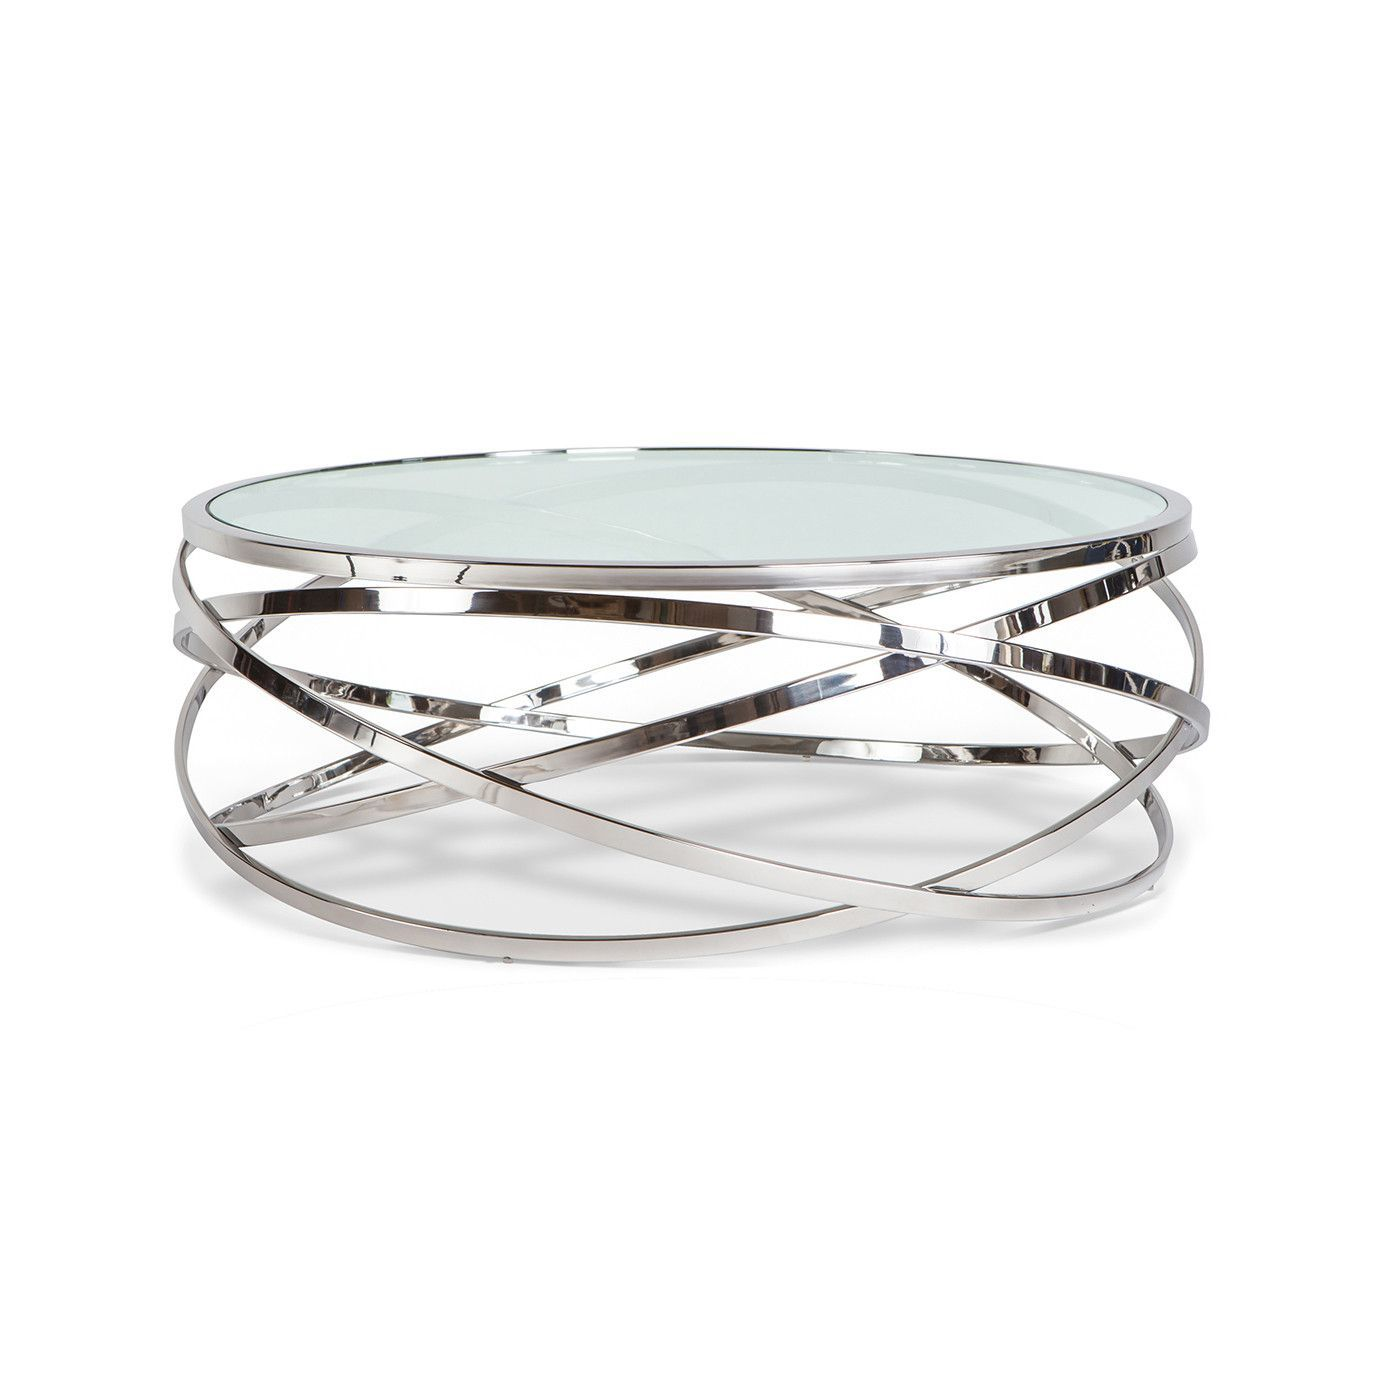 Spark Round Coffee Table Polished Stainless Steel Round Glass Coffee Table Modern Glass Coffee Table Coffee Table Vintage [ 1400 x 1400 Pixel ]